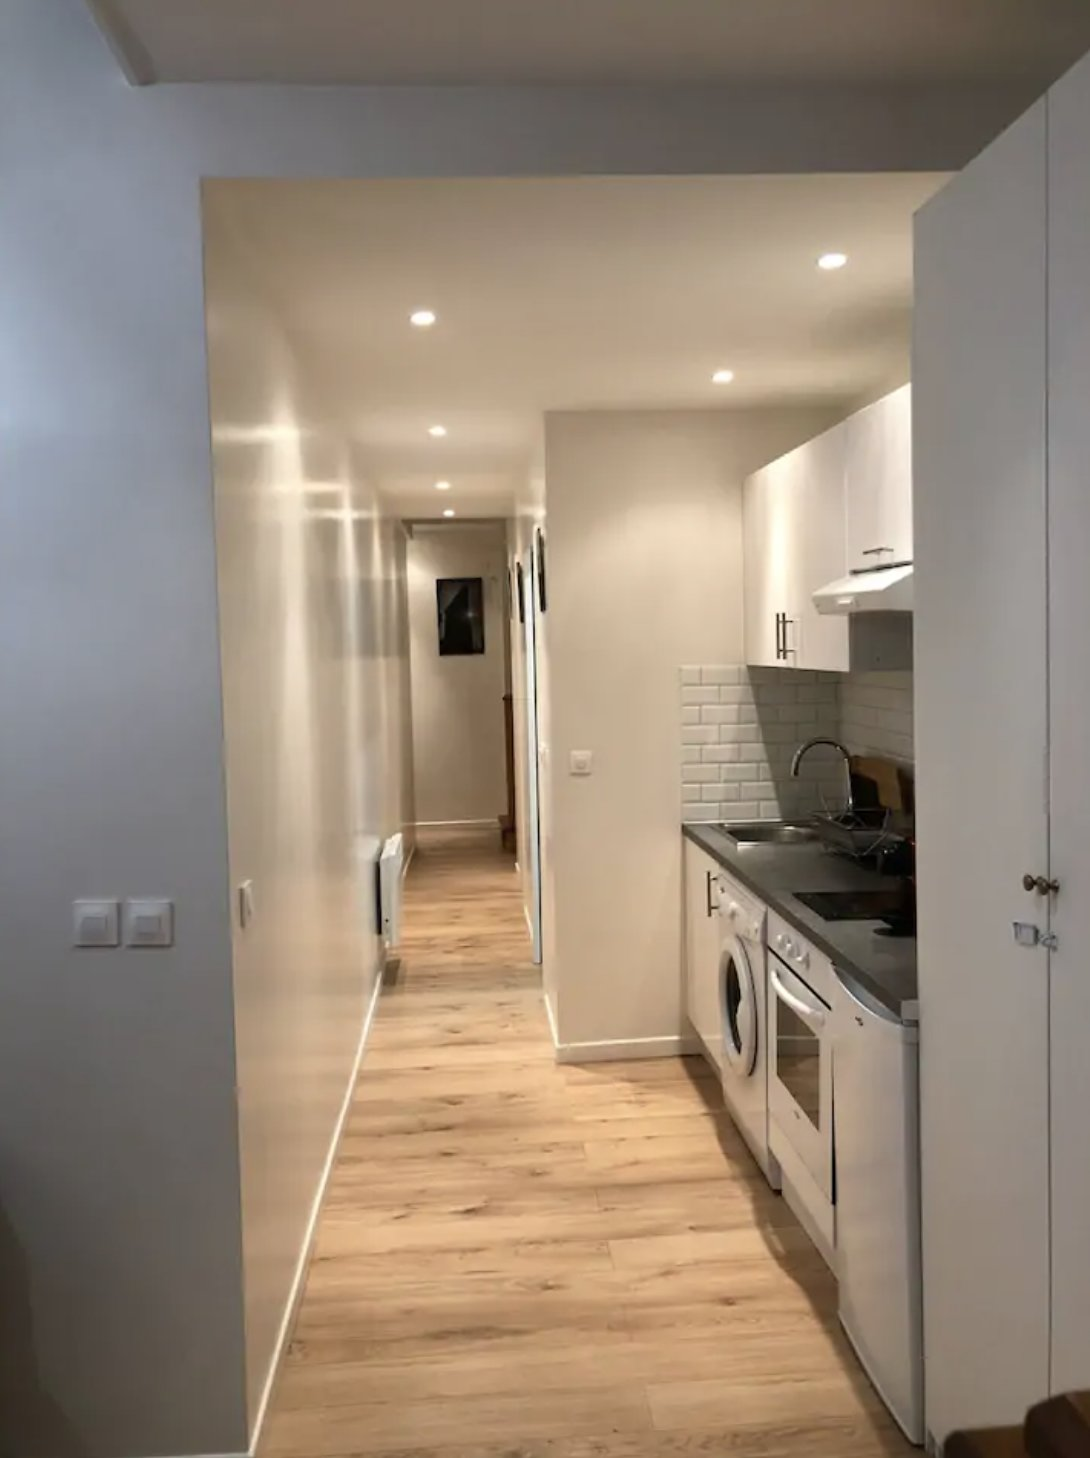 Sale Apartment - Paris 11th (Paris 11ème)